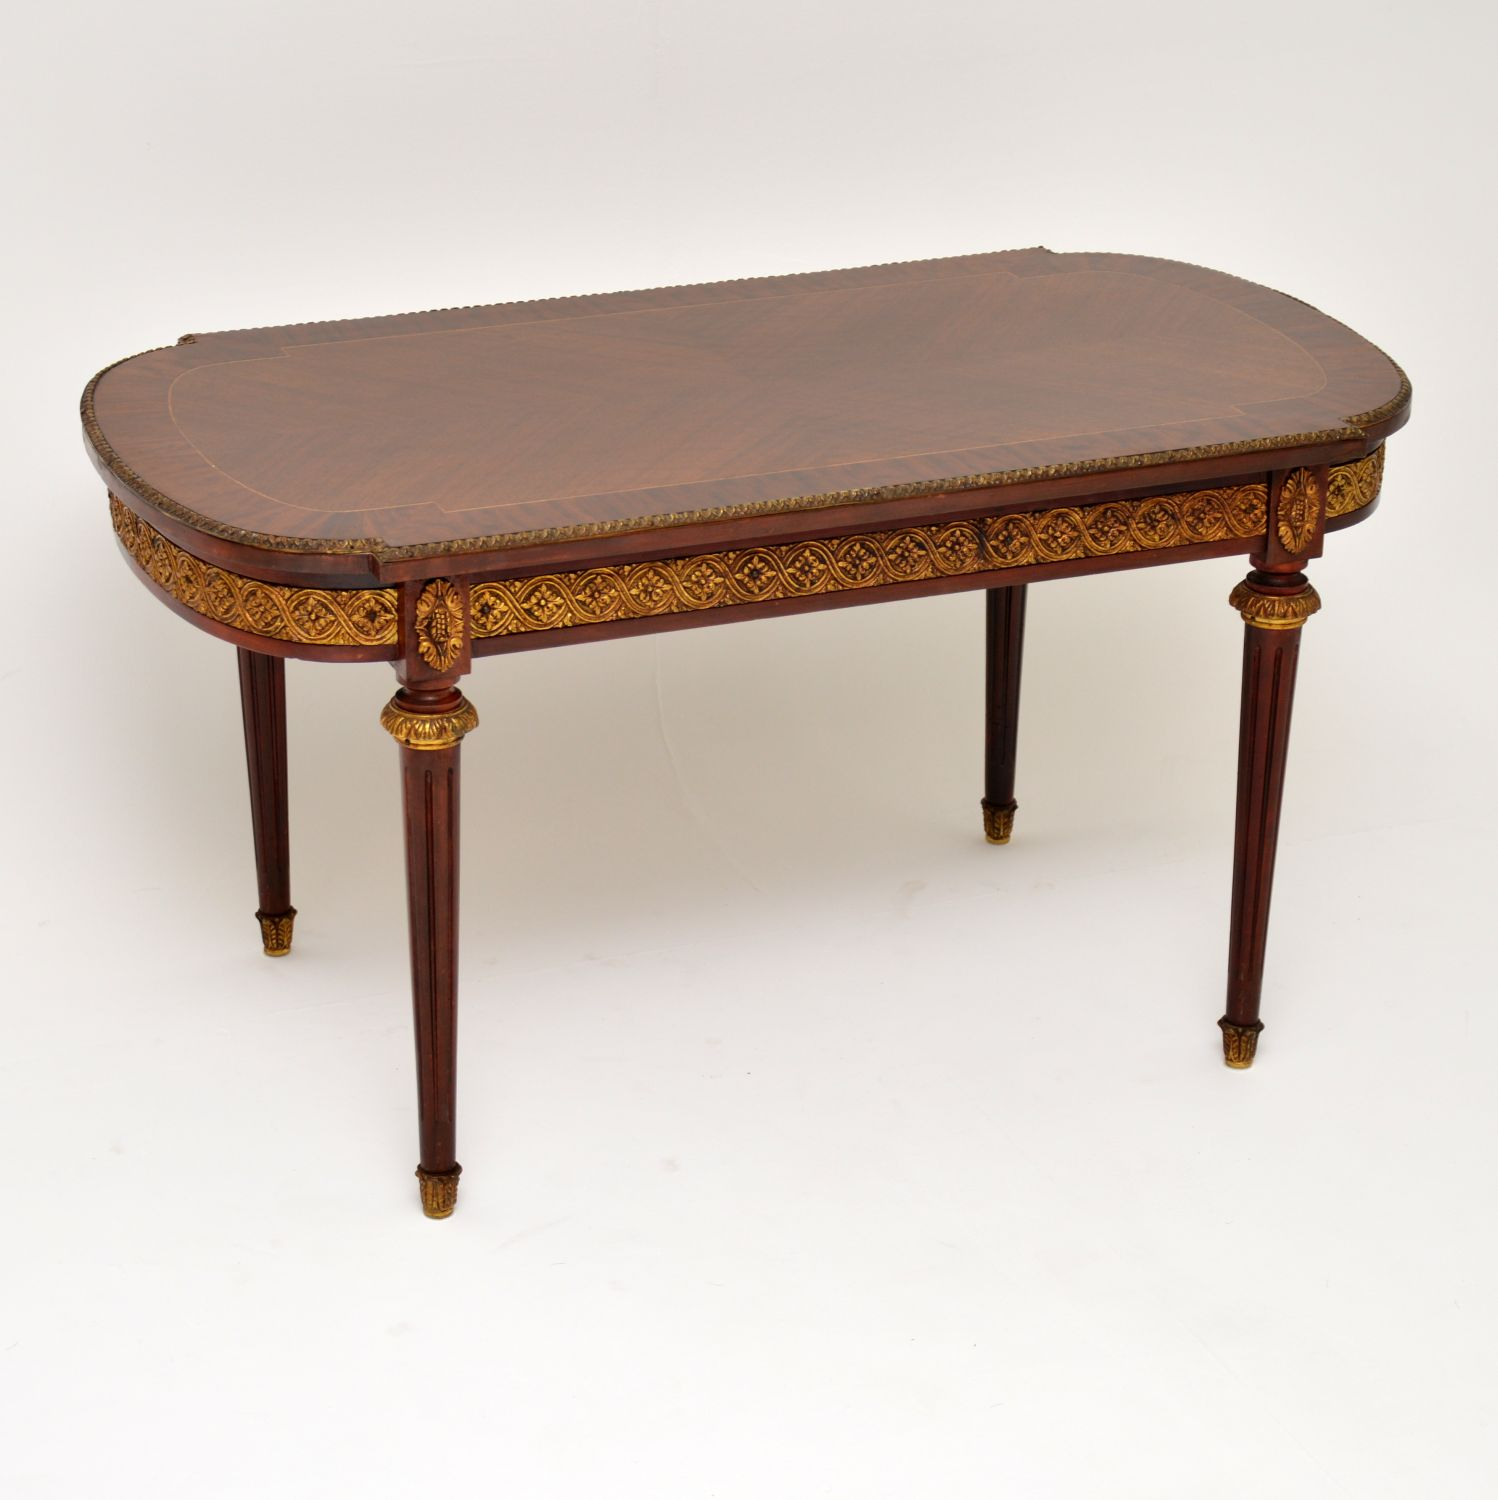 antique french inlaid king wood coffee table